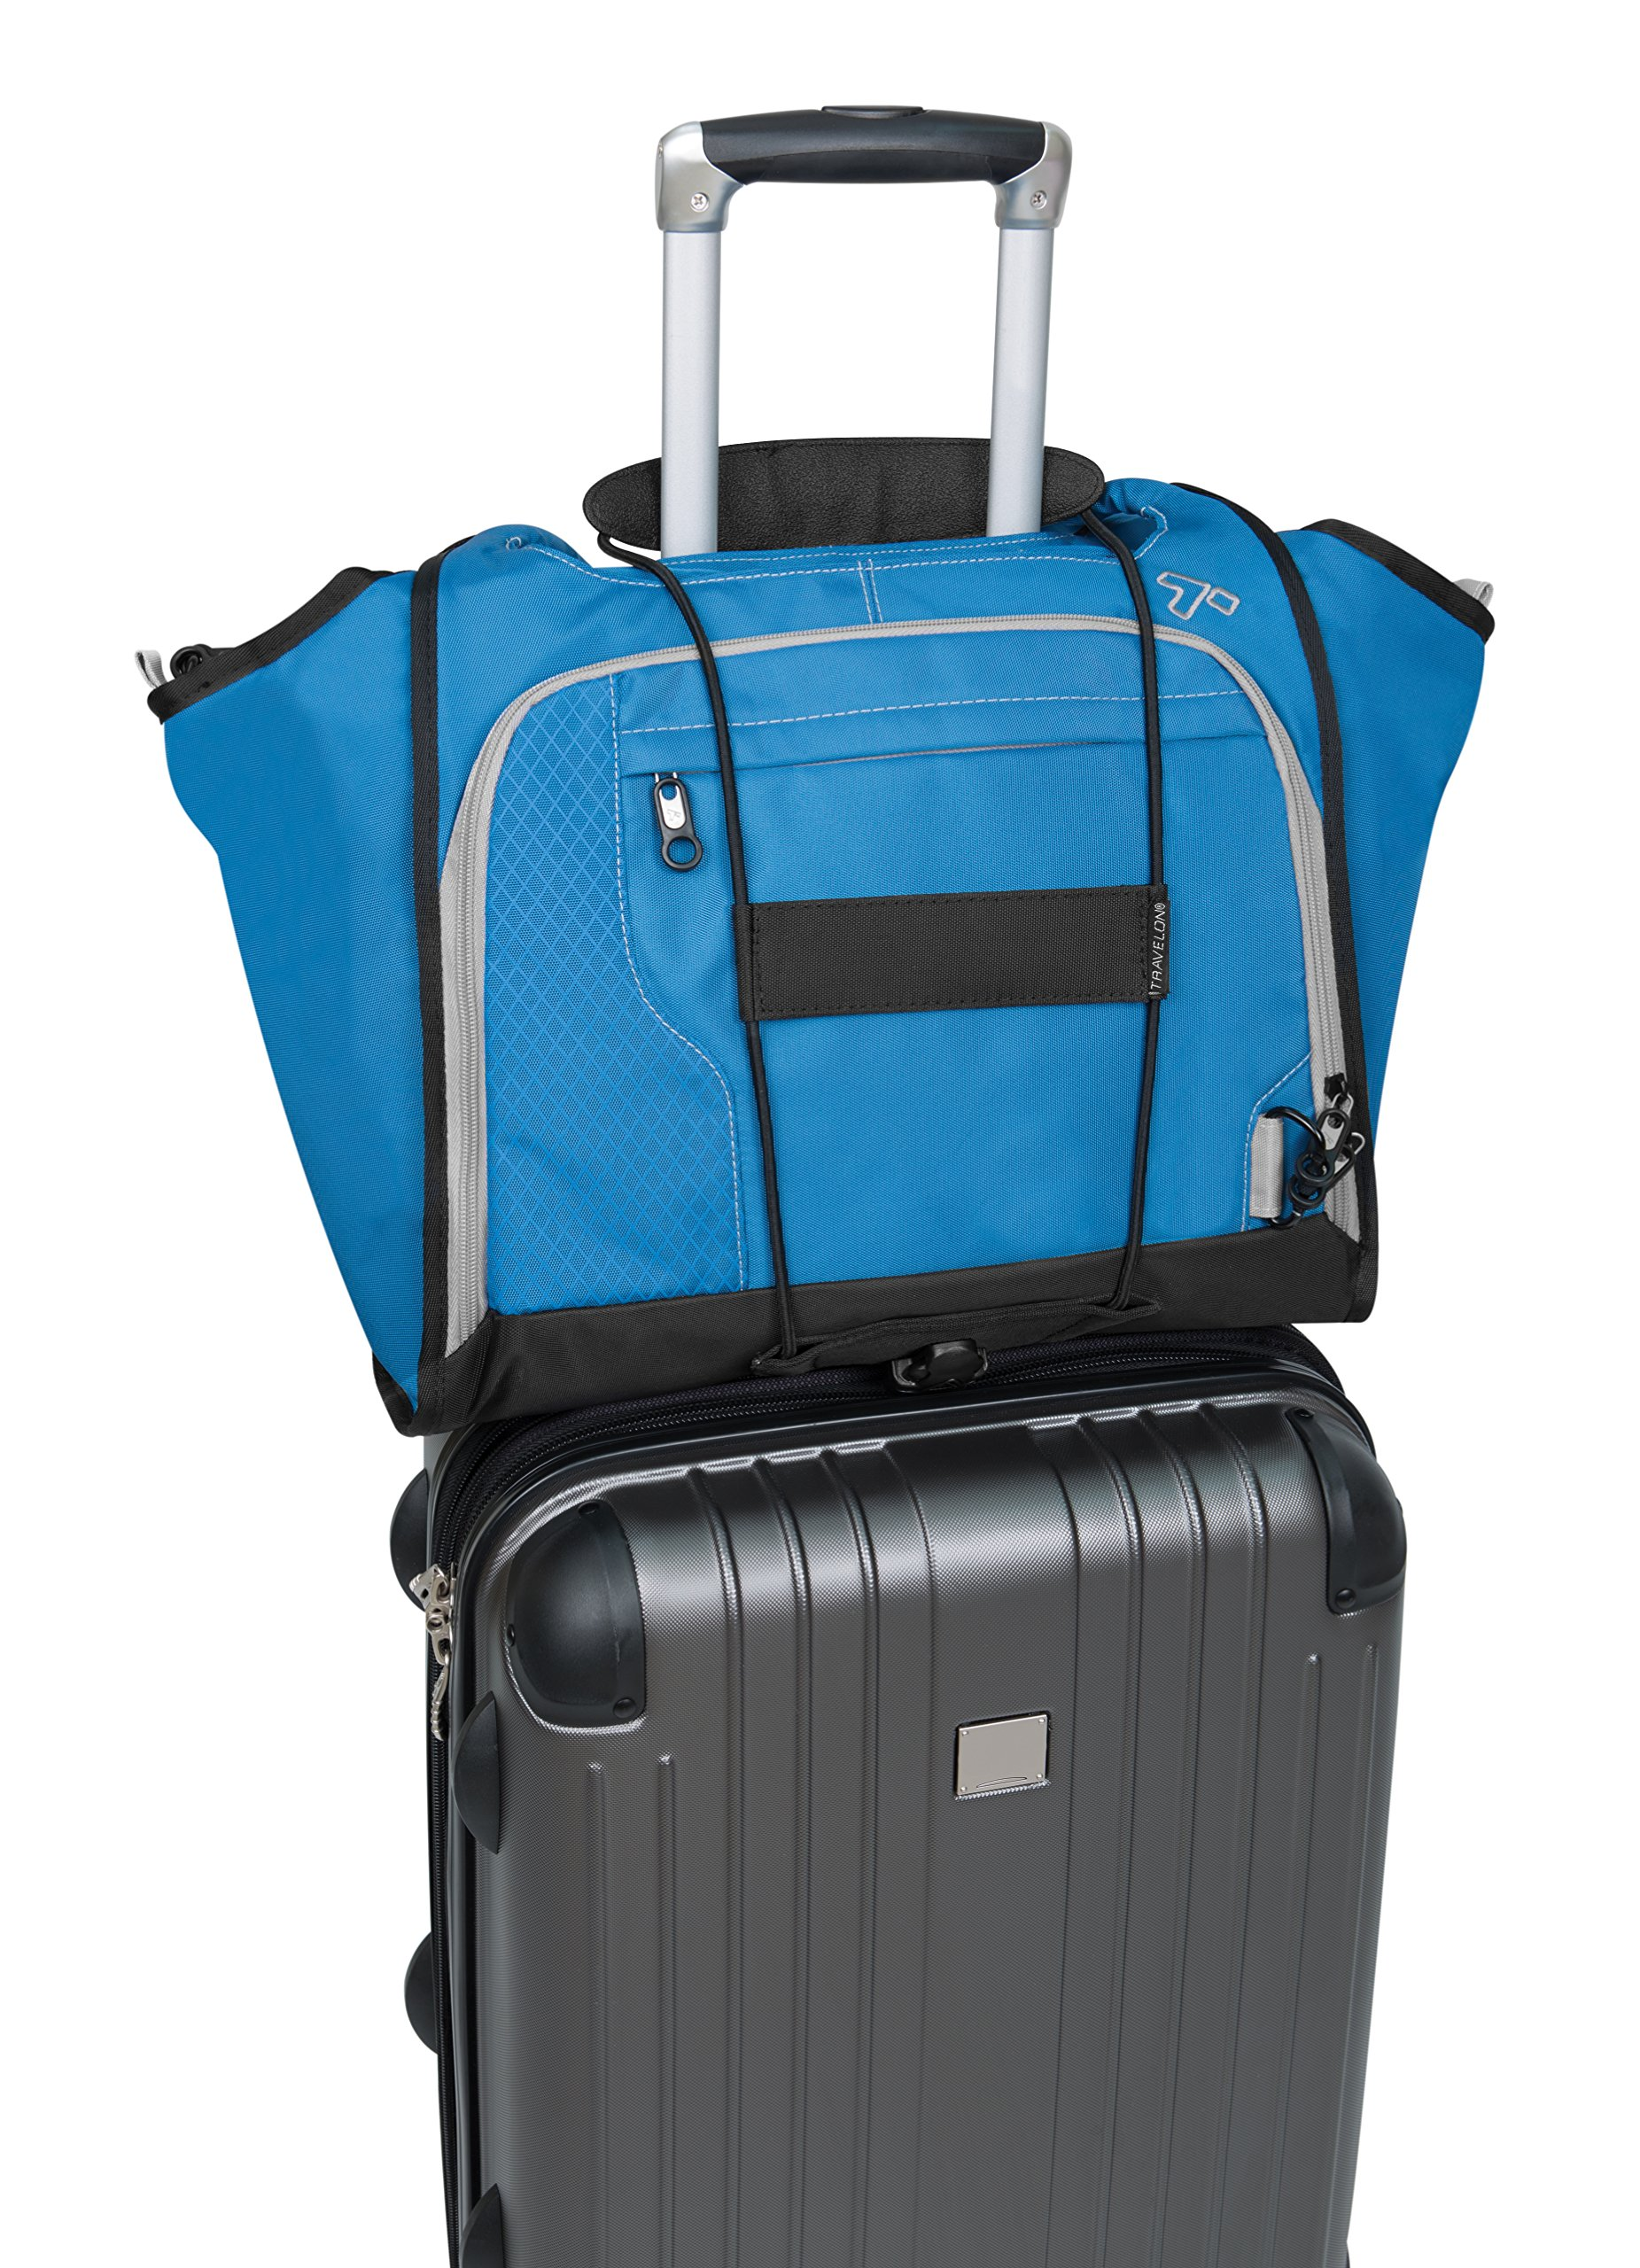 Travelon Bag Bungee, Black, One Size by Travelon (Image #4)